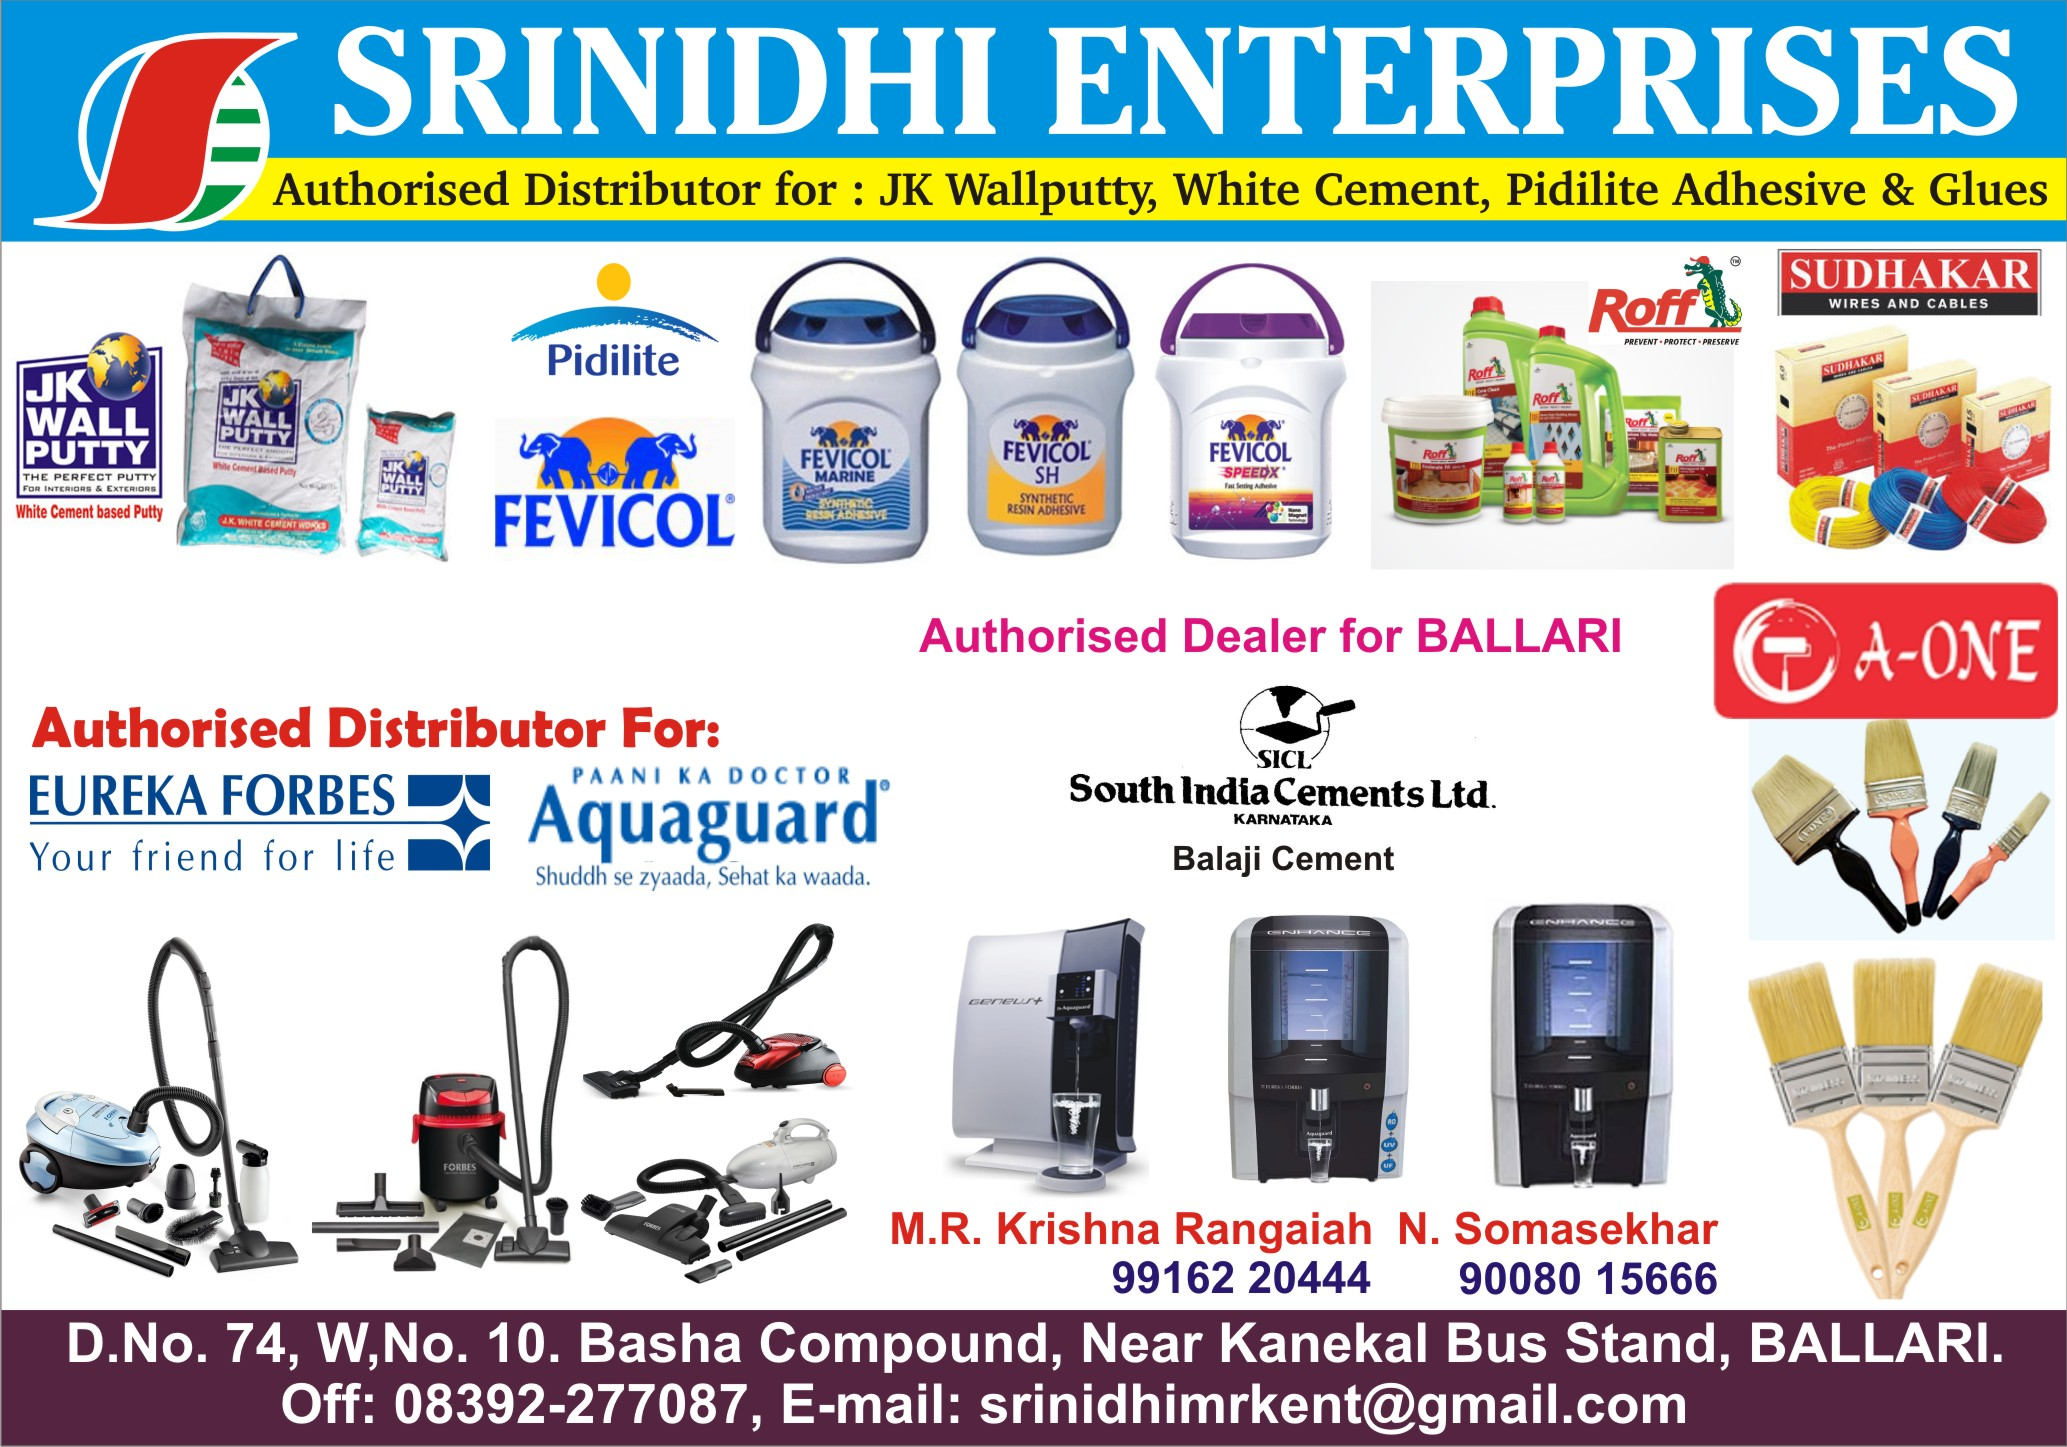 Srinidhi Enterprises